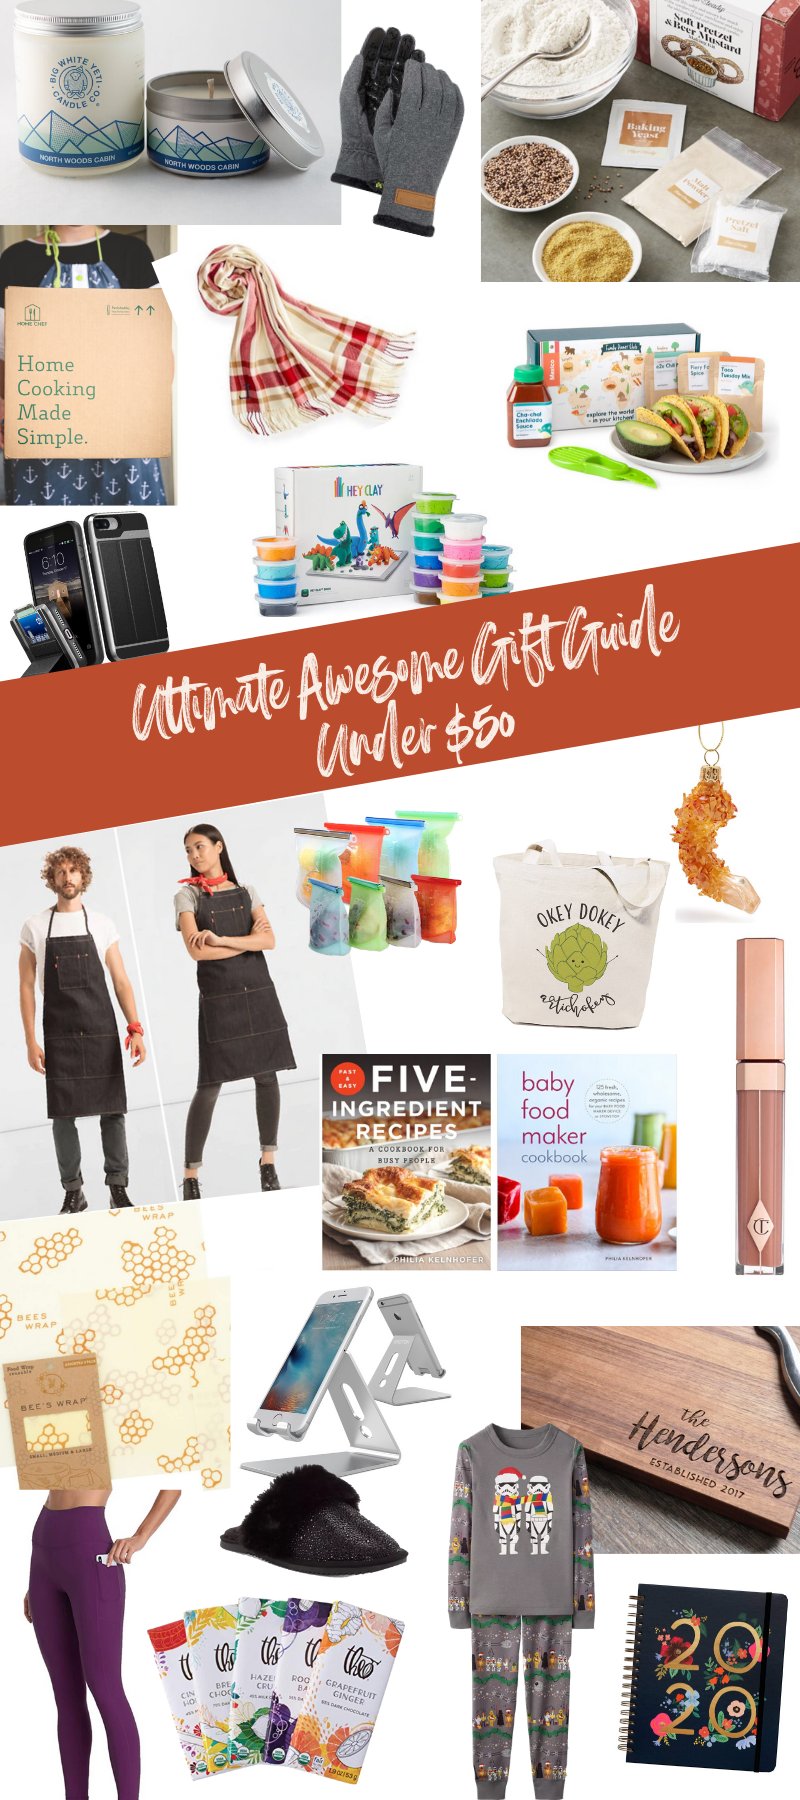 An awesome guide for gifts under $50